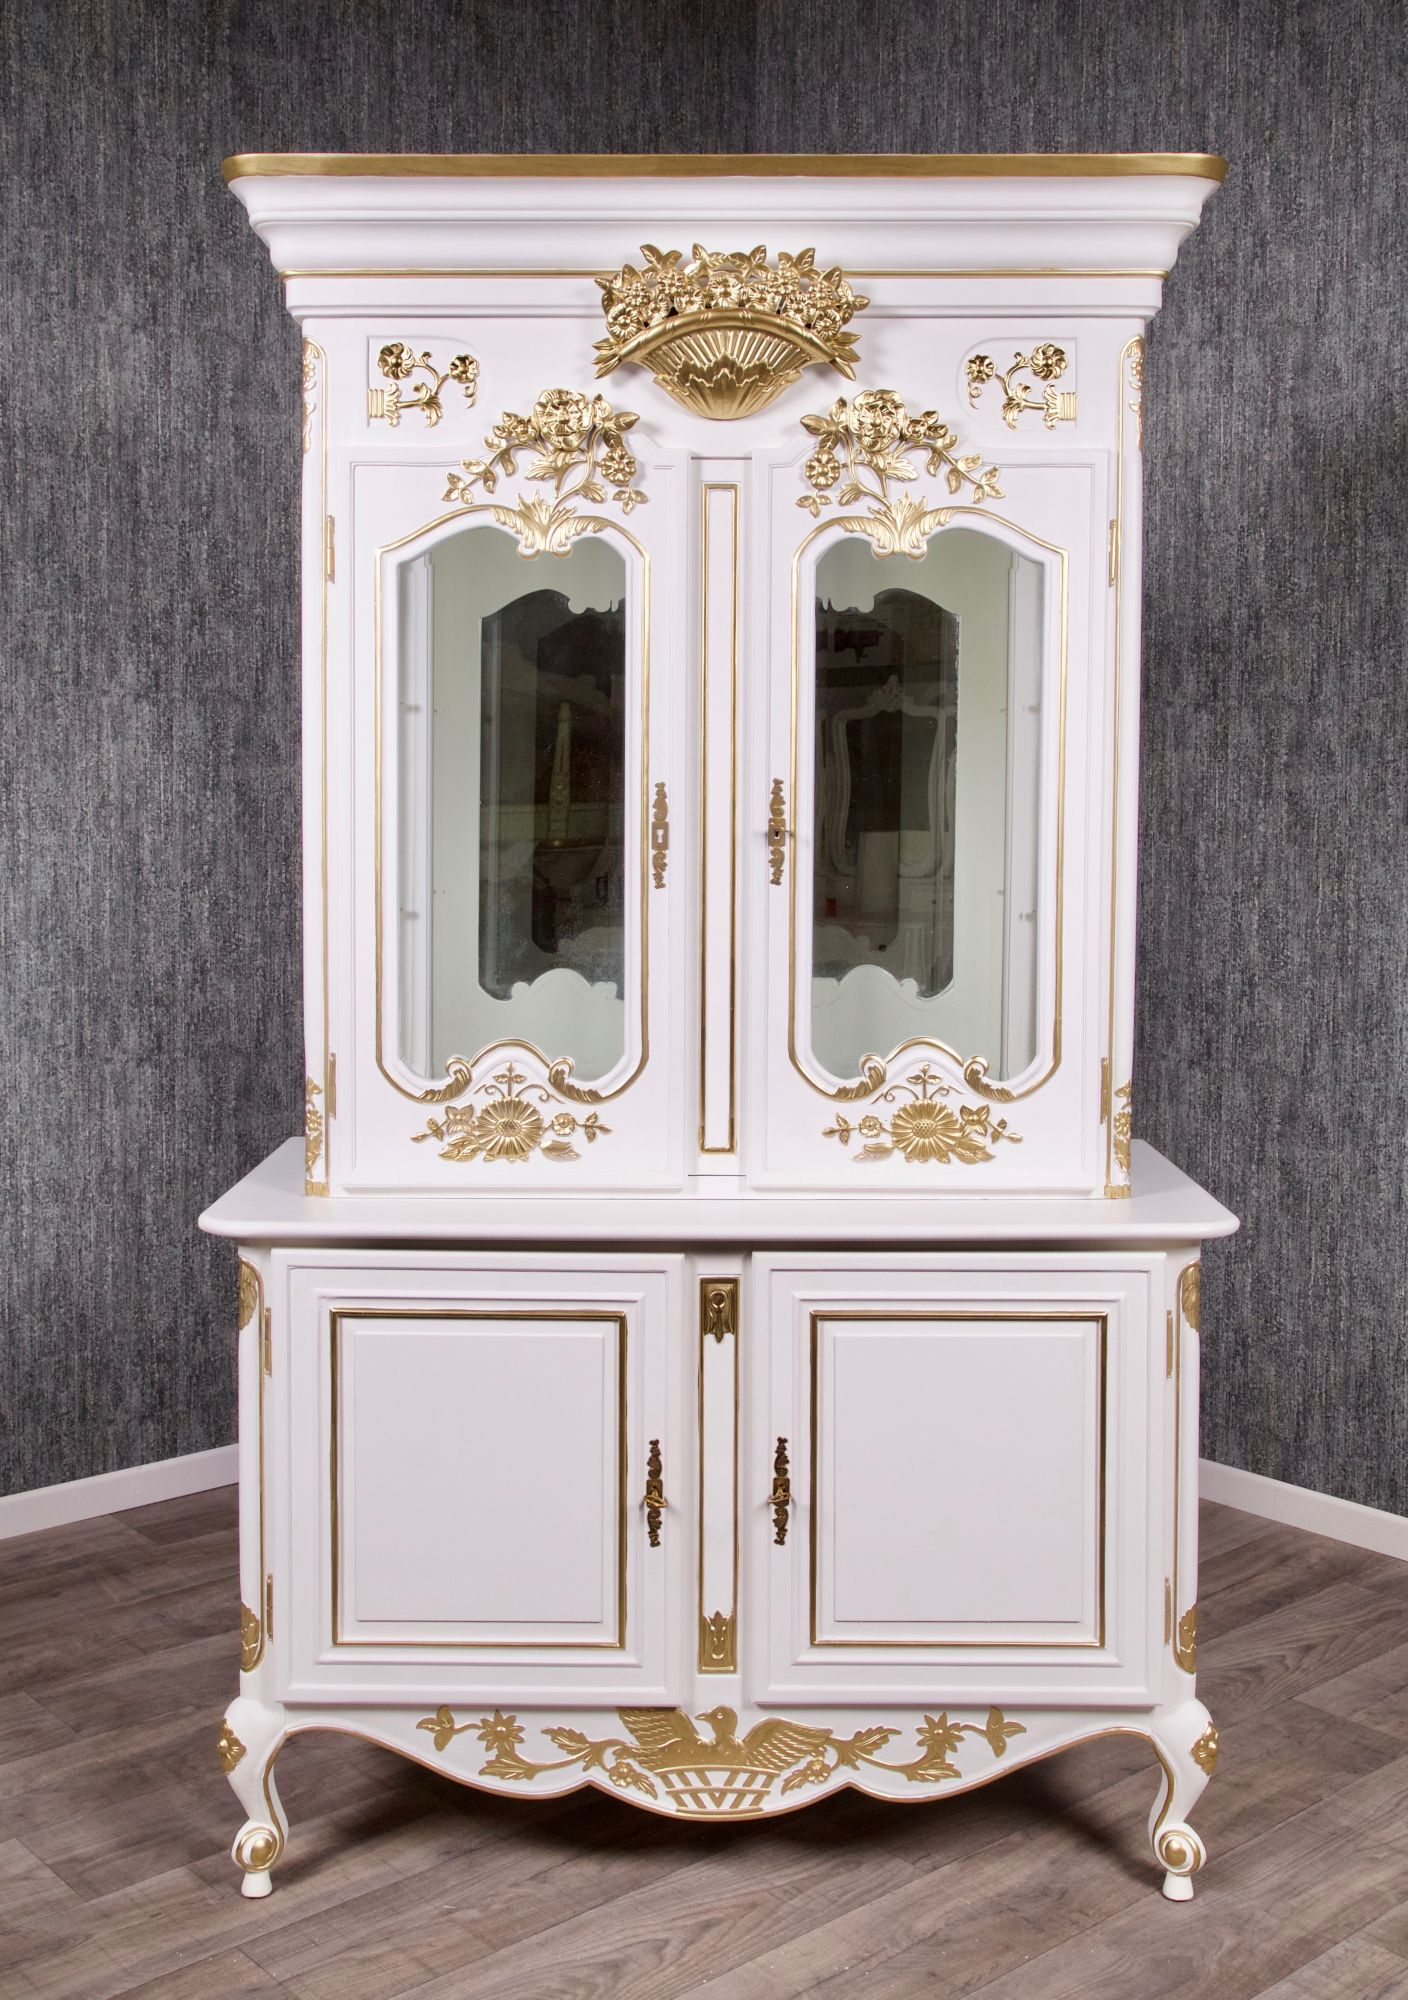 barock buffet rar 004 gs in wei mit starkem gold dekor vitrinen buffets shop repro. Black Bedroom Furniture Sets. Home Design Ideas